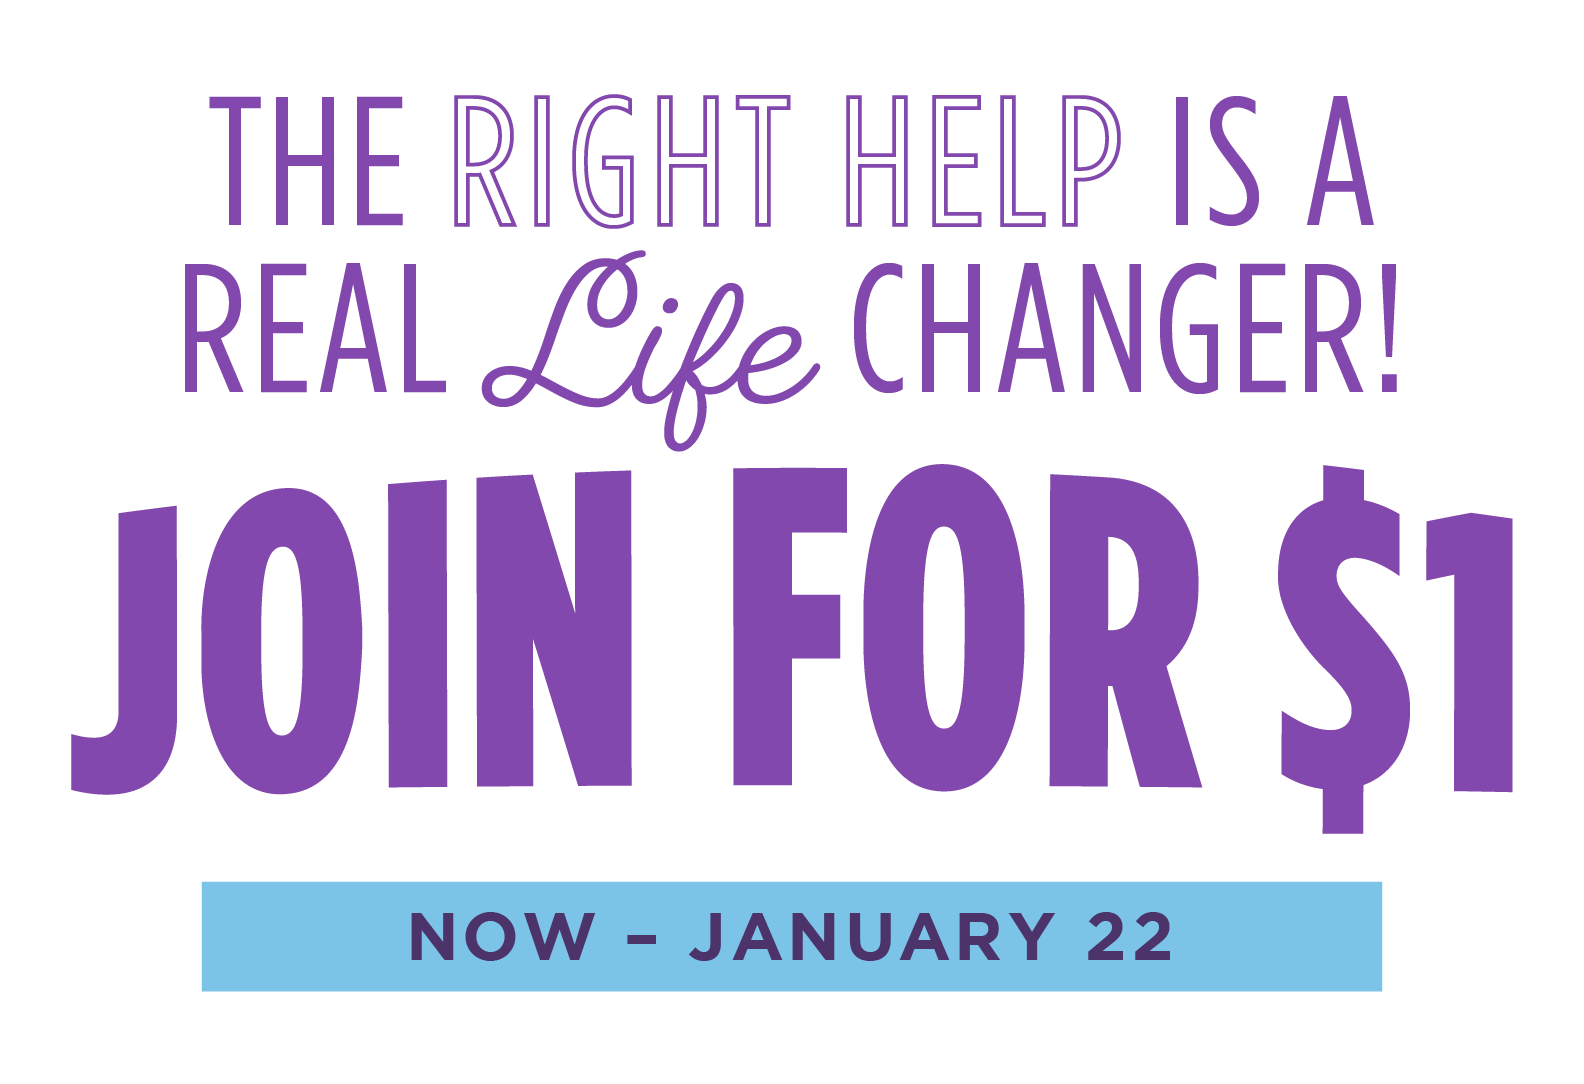 The Right Help Is A Real Life Changer! Join for $1, Now Through January 22